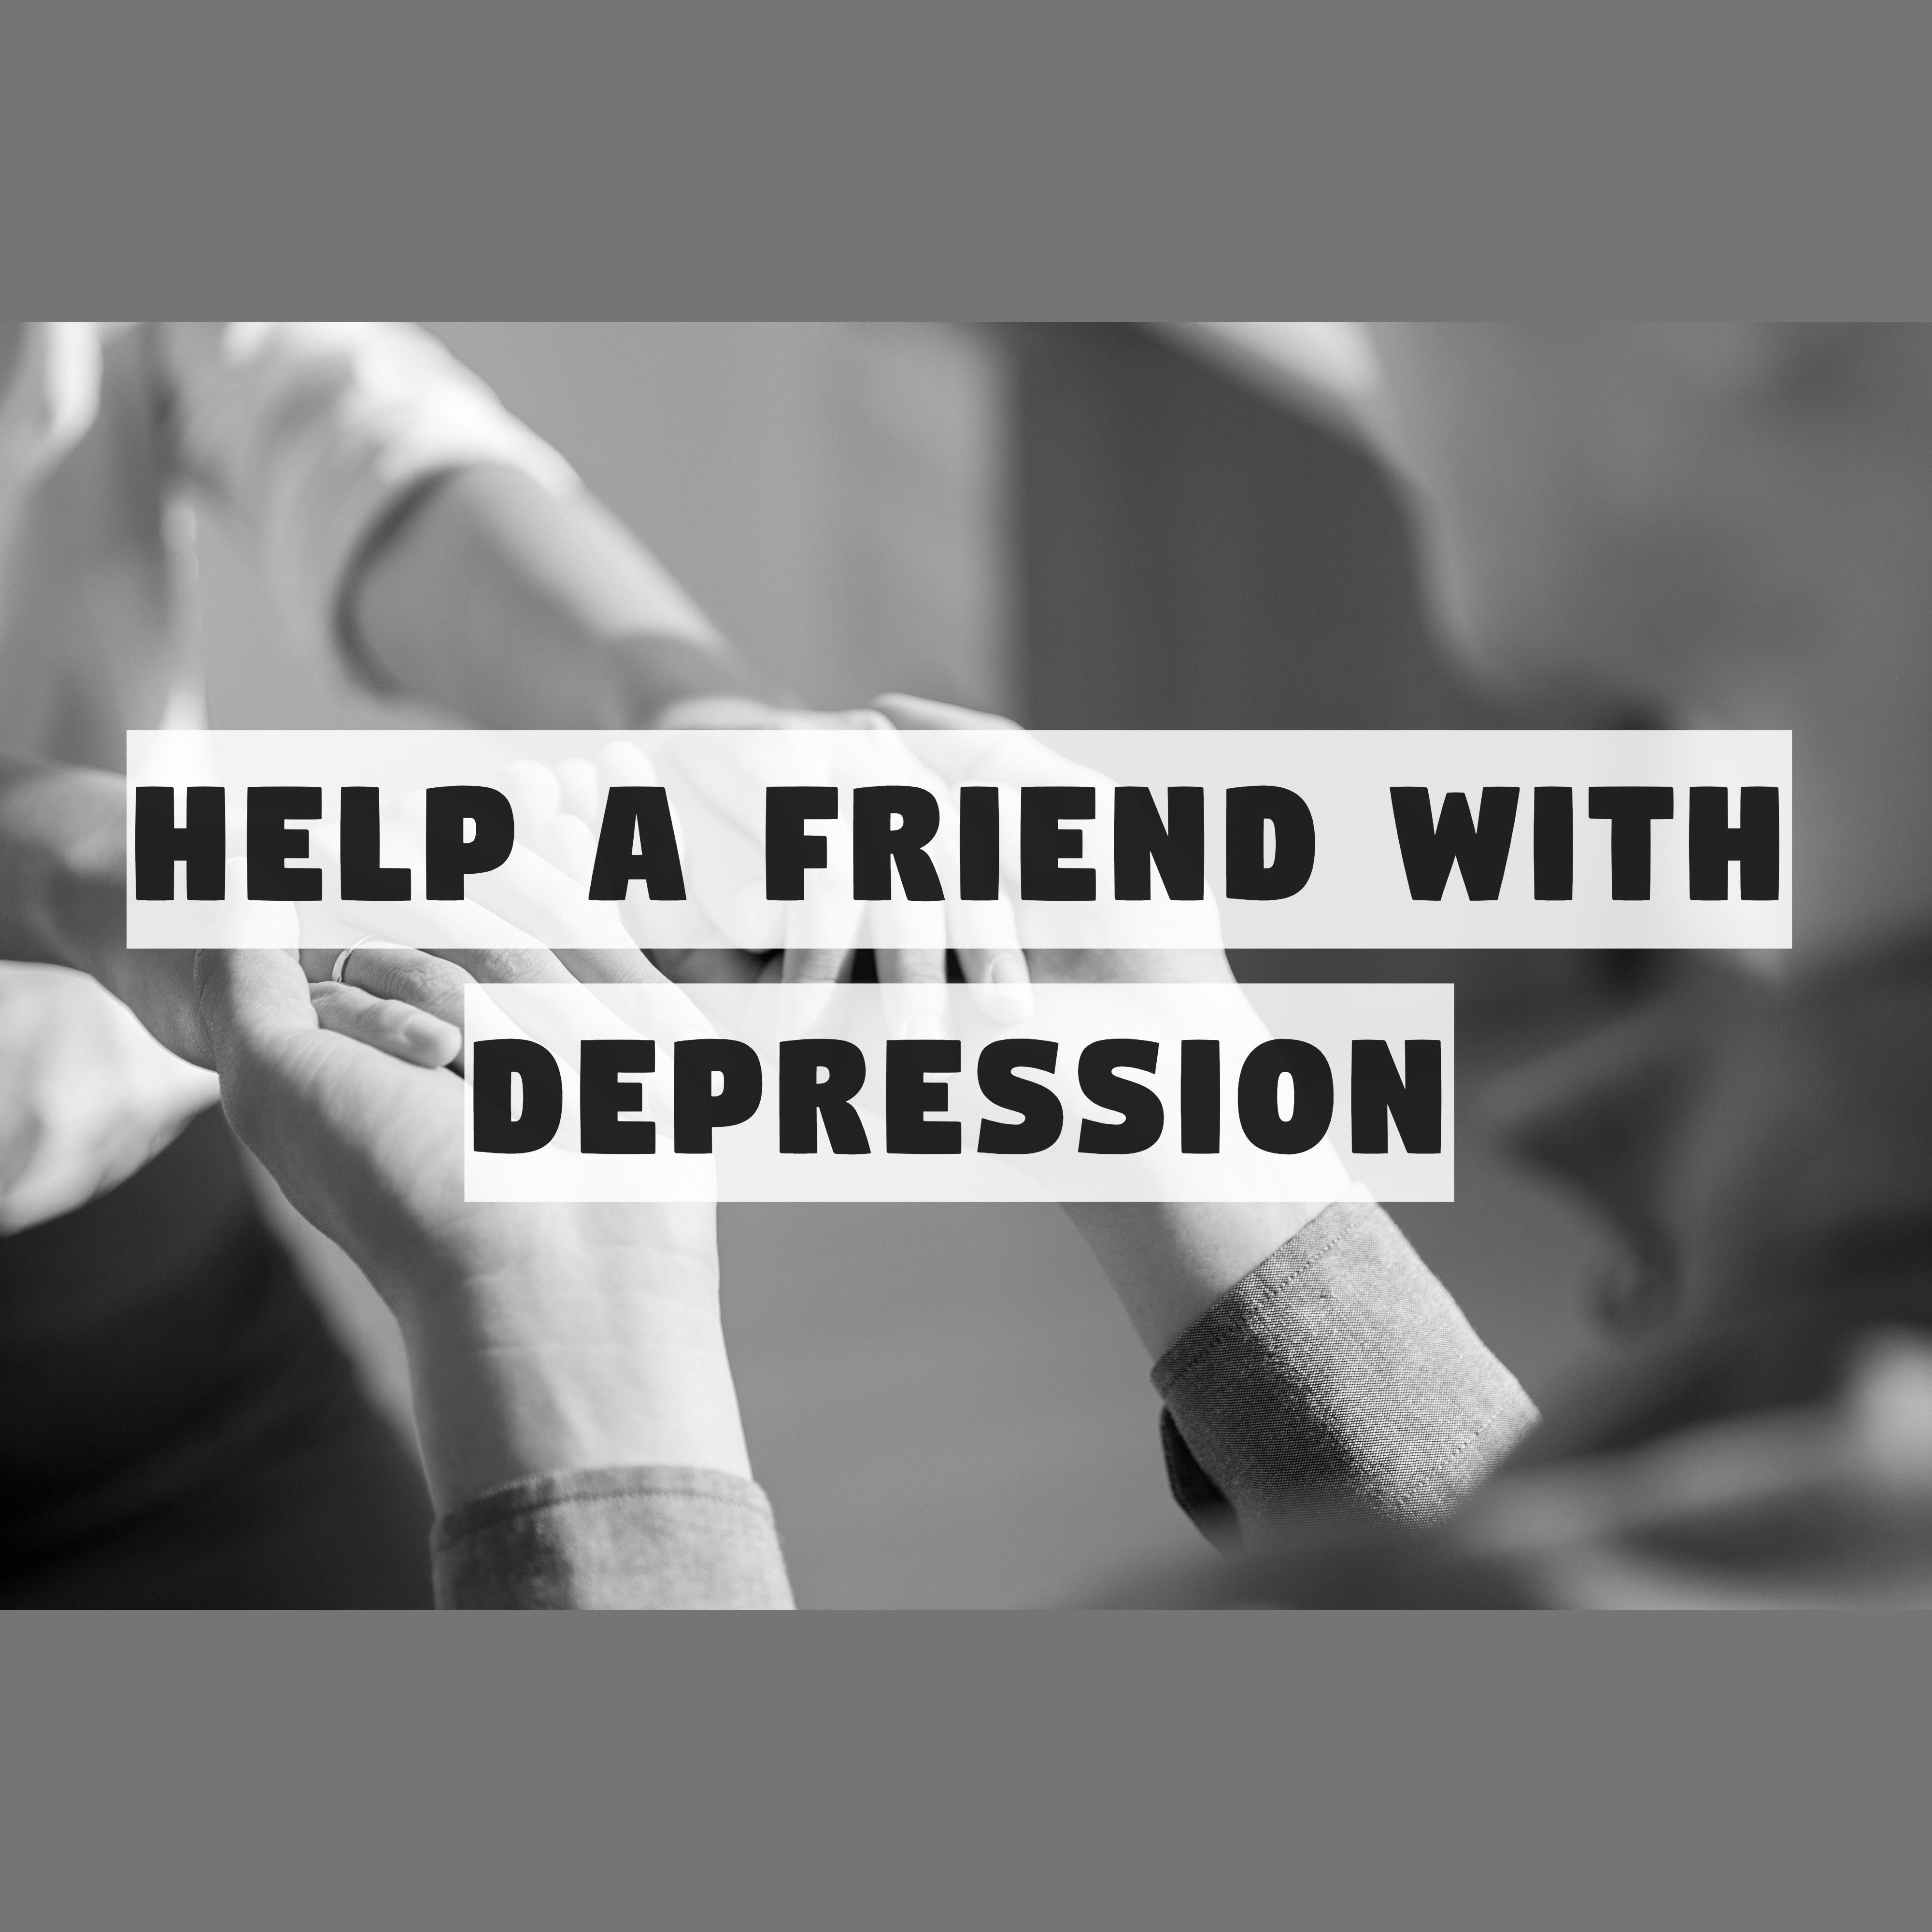 Help a friend with depression